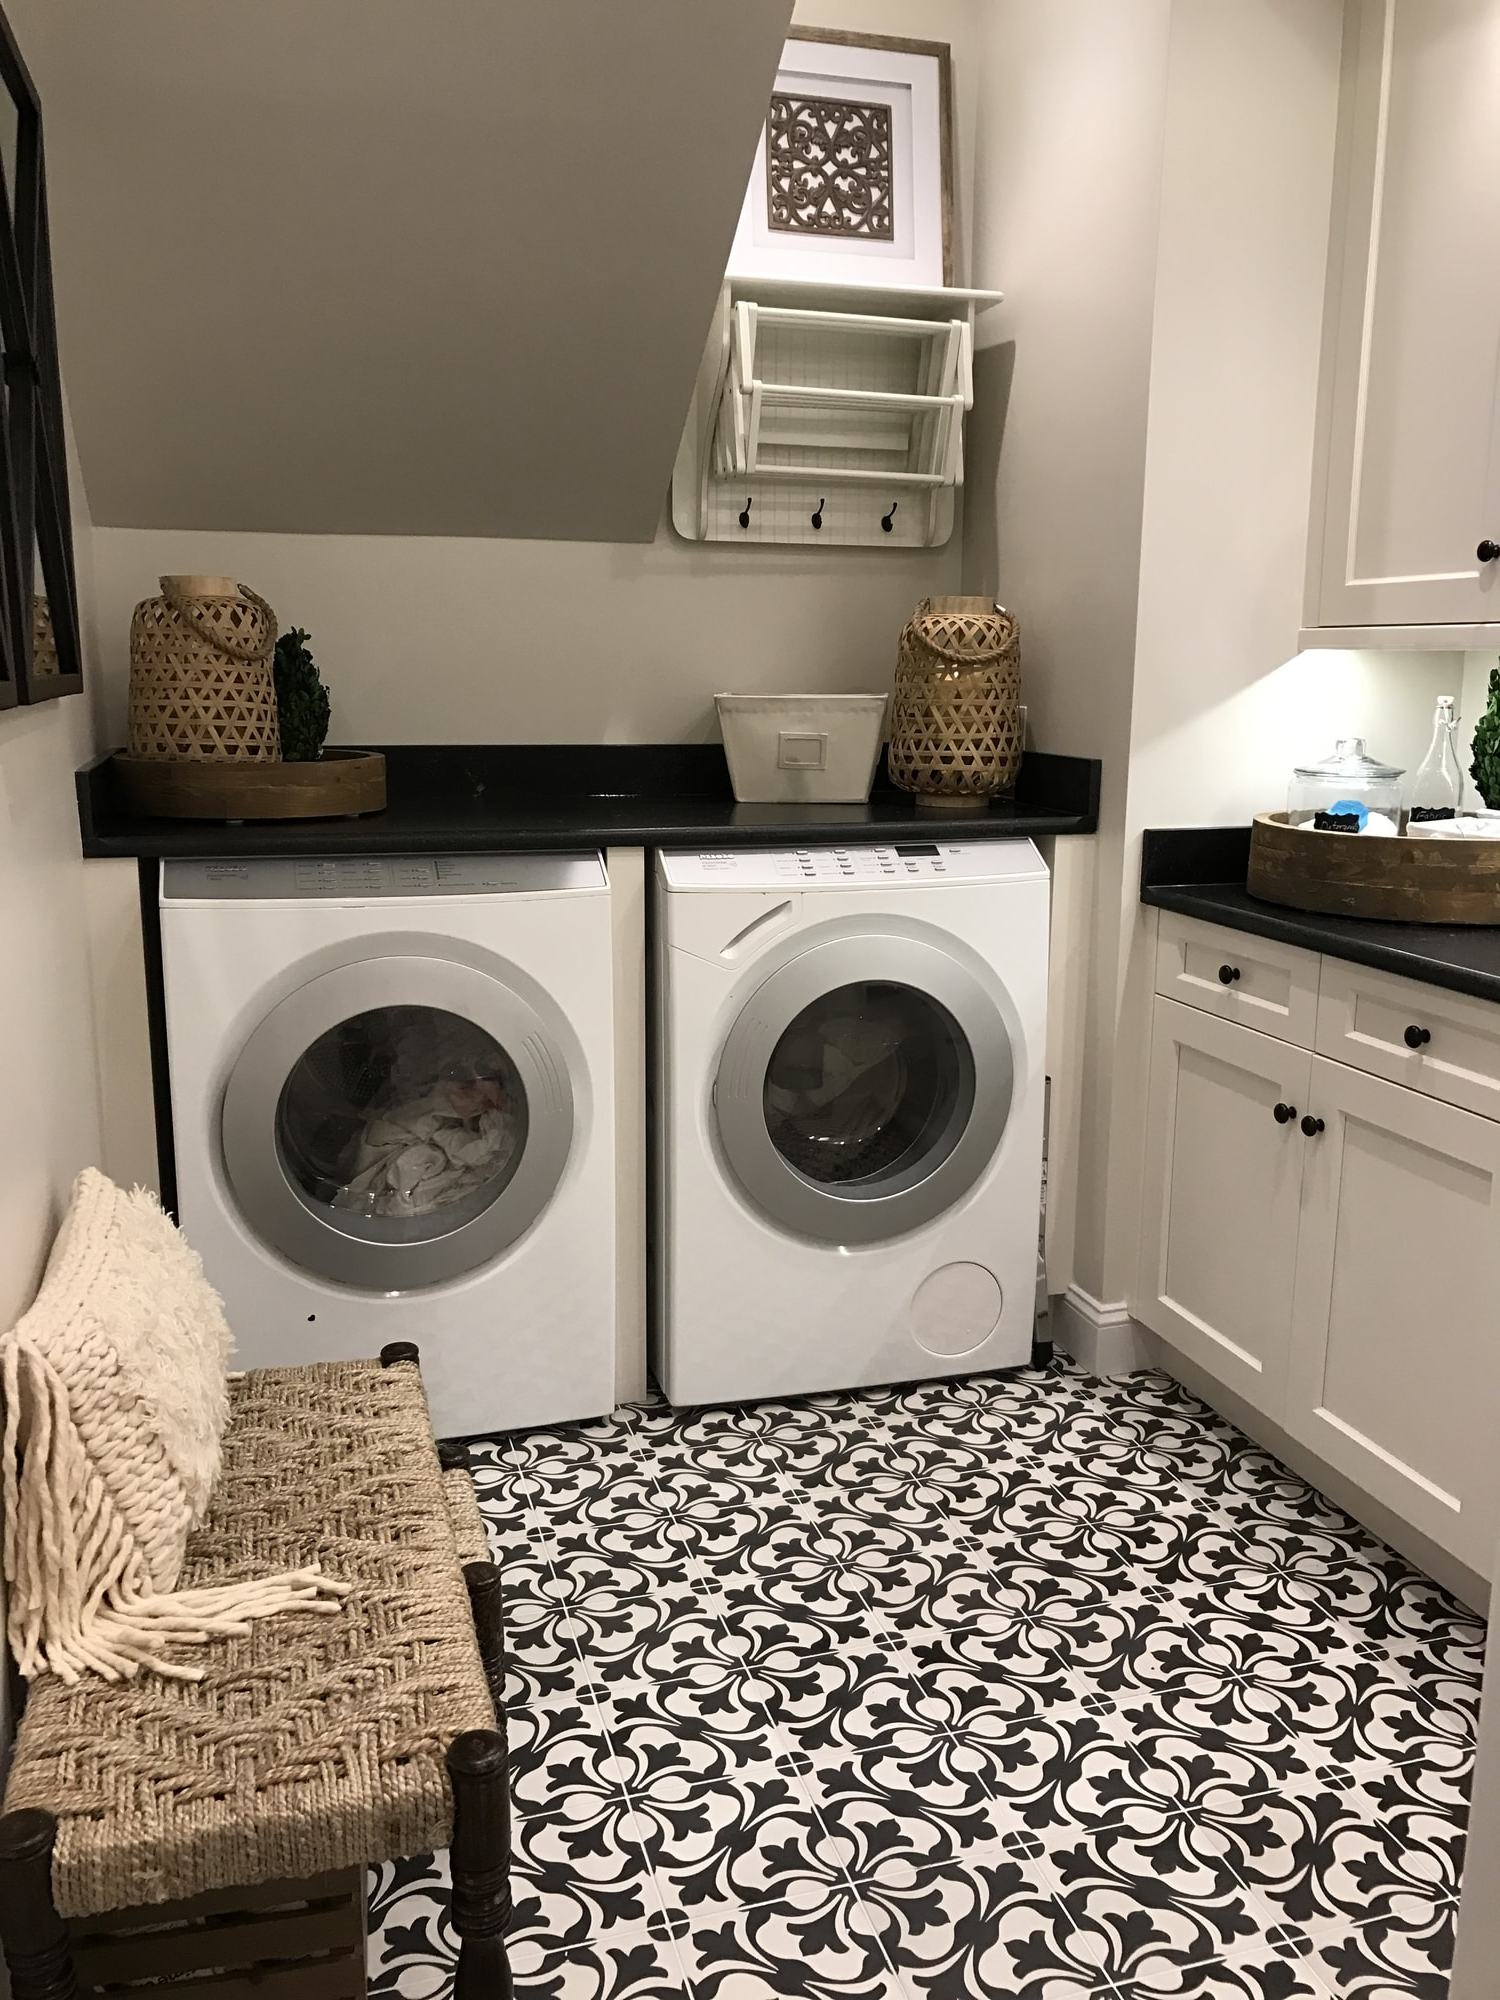 Modern mud room with washing machine and black and white patterned floor